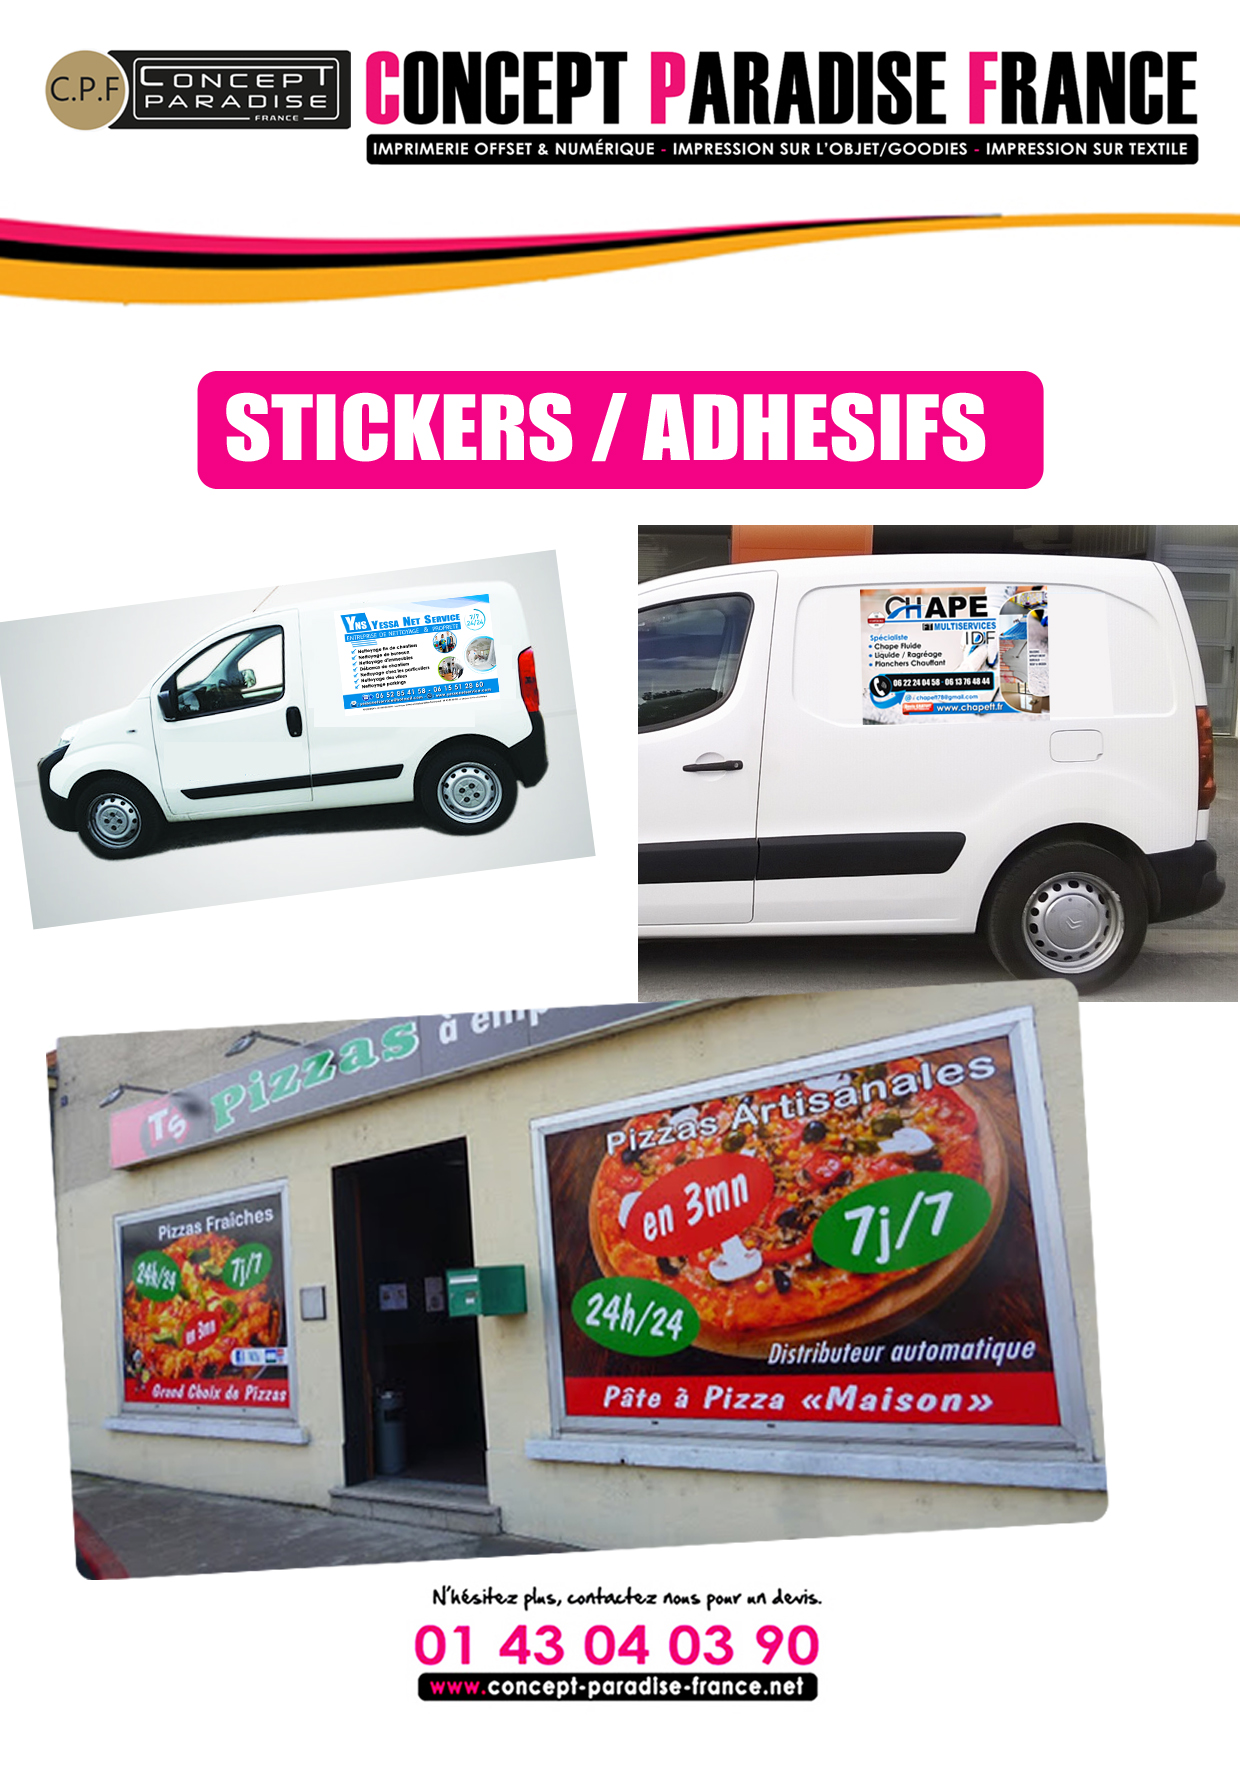 STICKERS / ADHESIFS